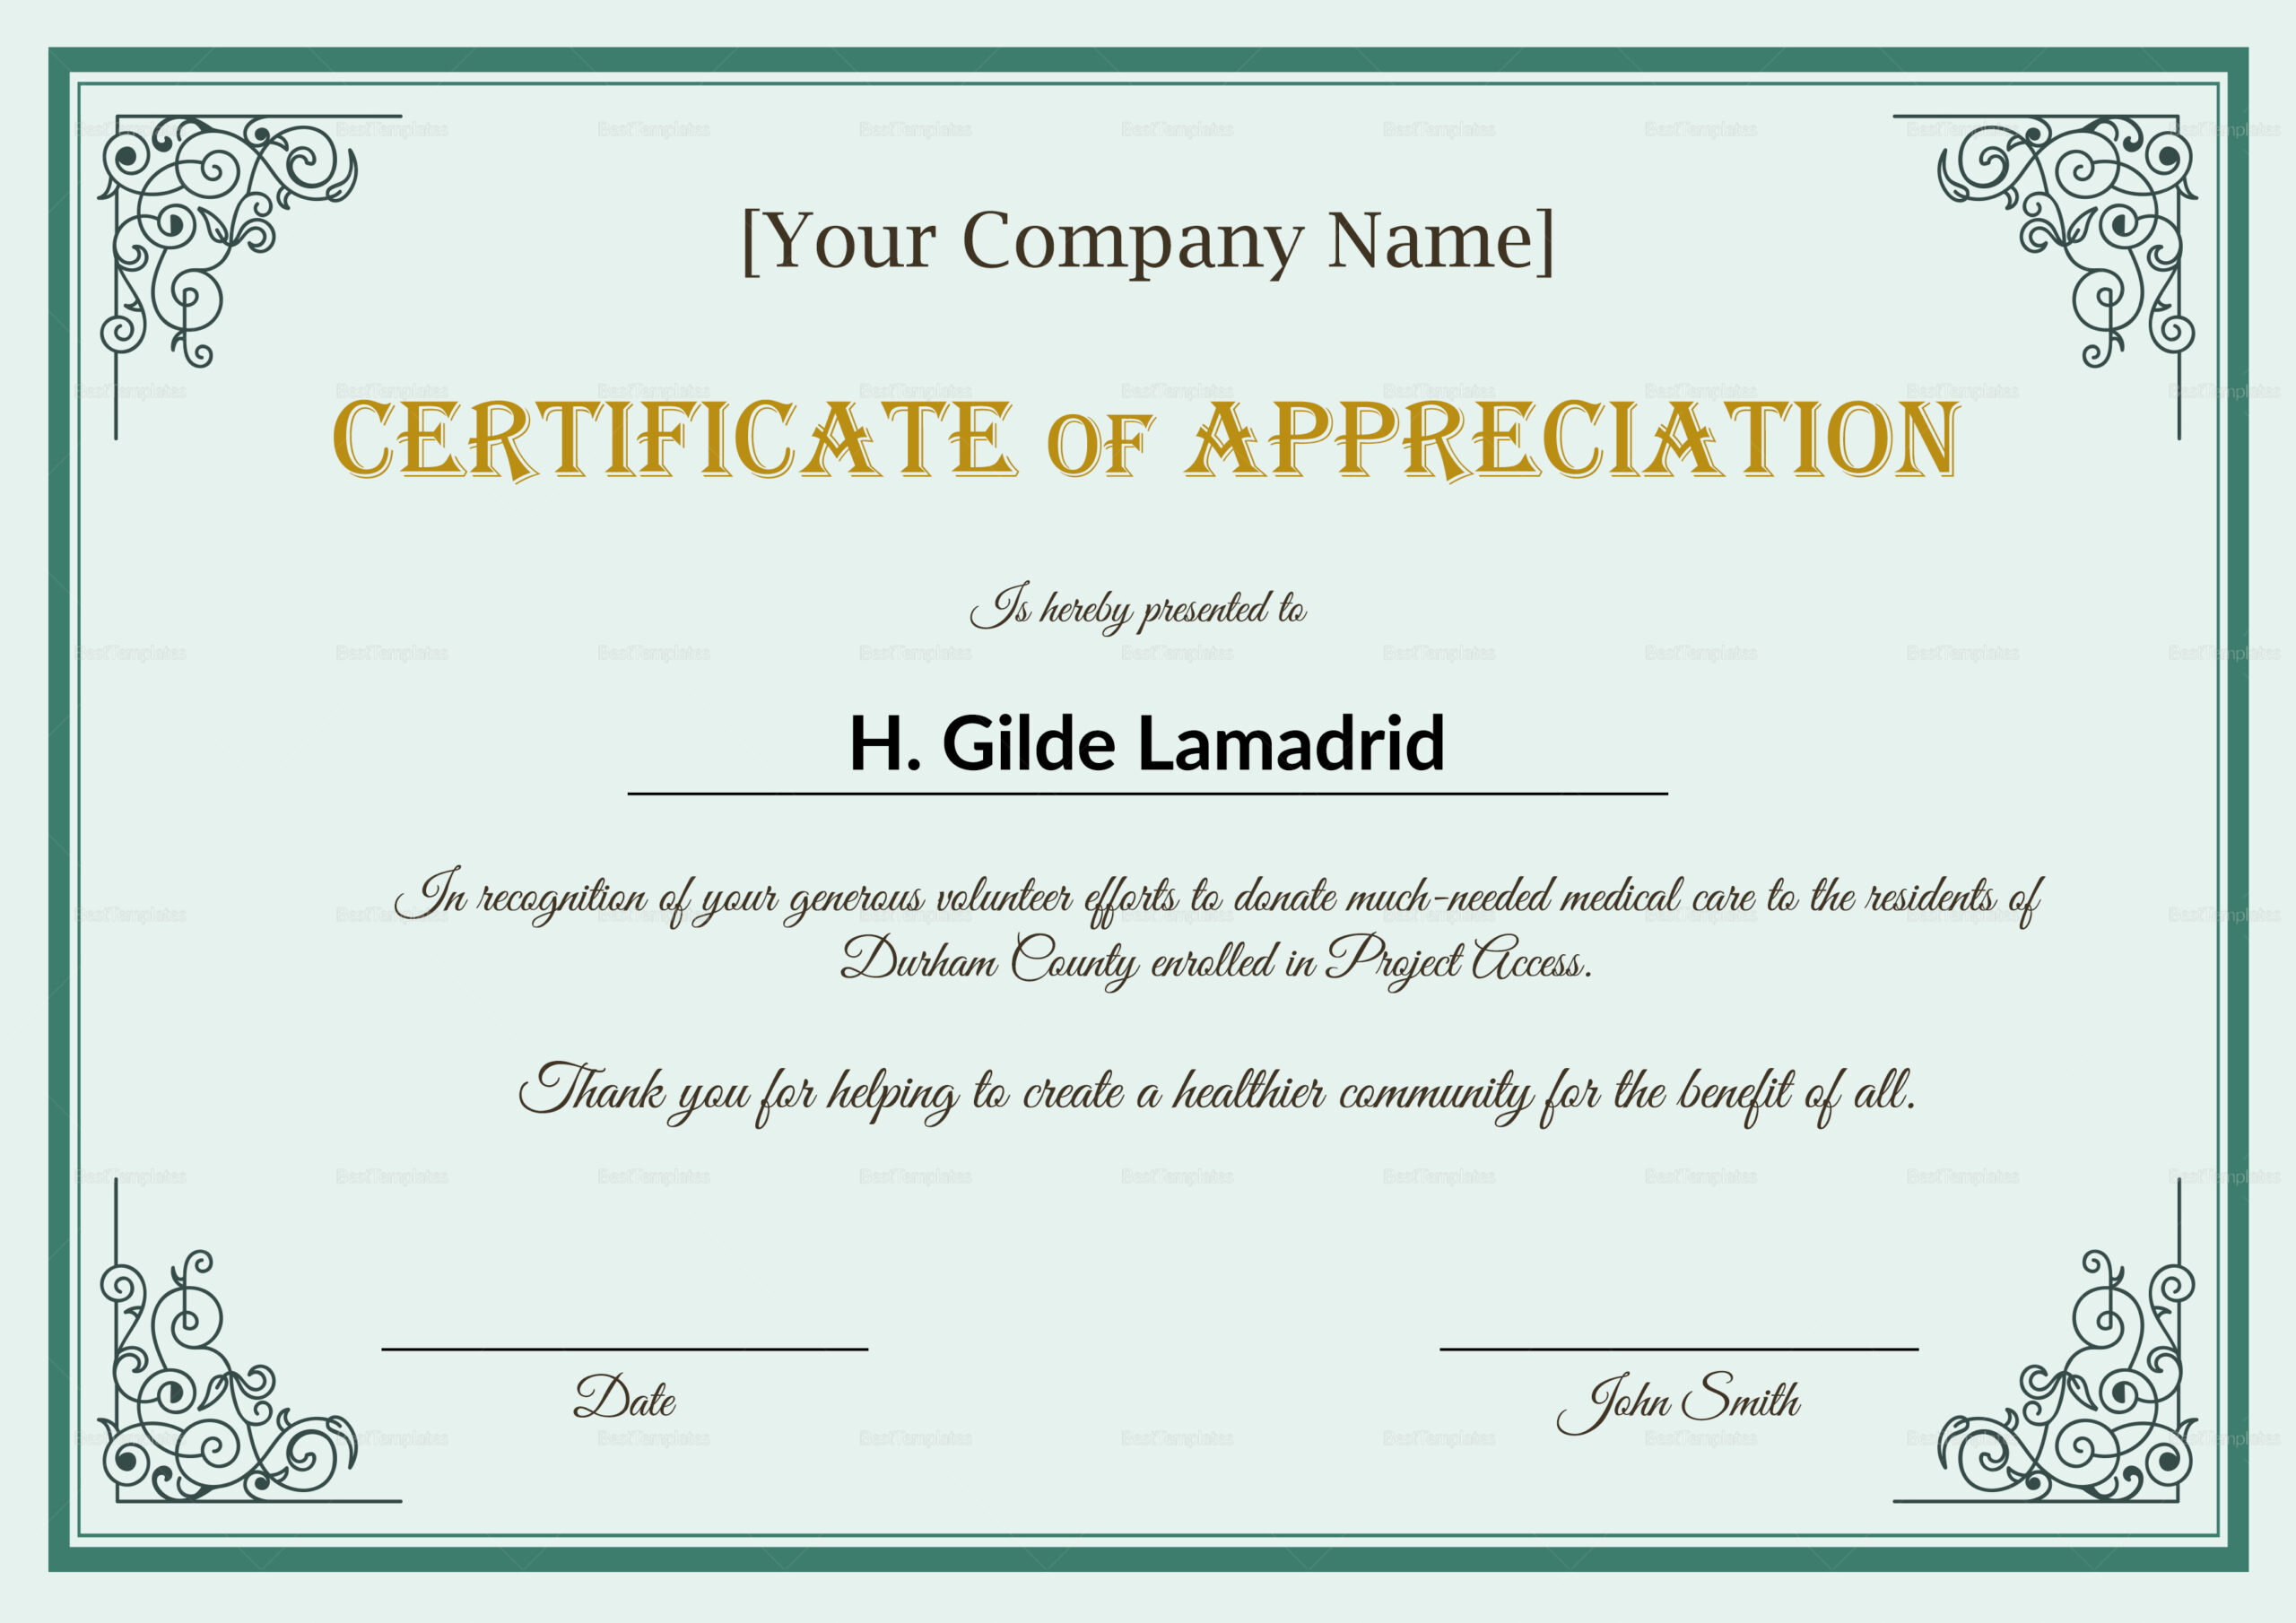 Employee Recognition Certificates Templates  Calep throughout Best Employee Certificate Template